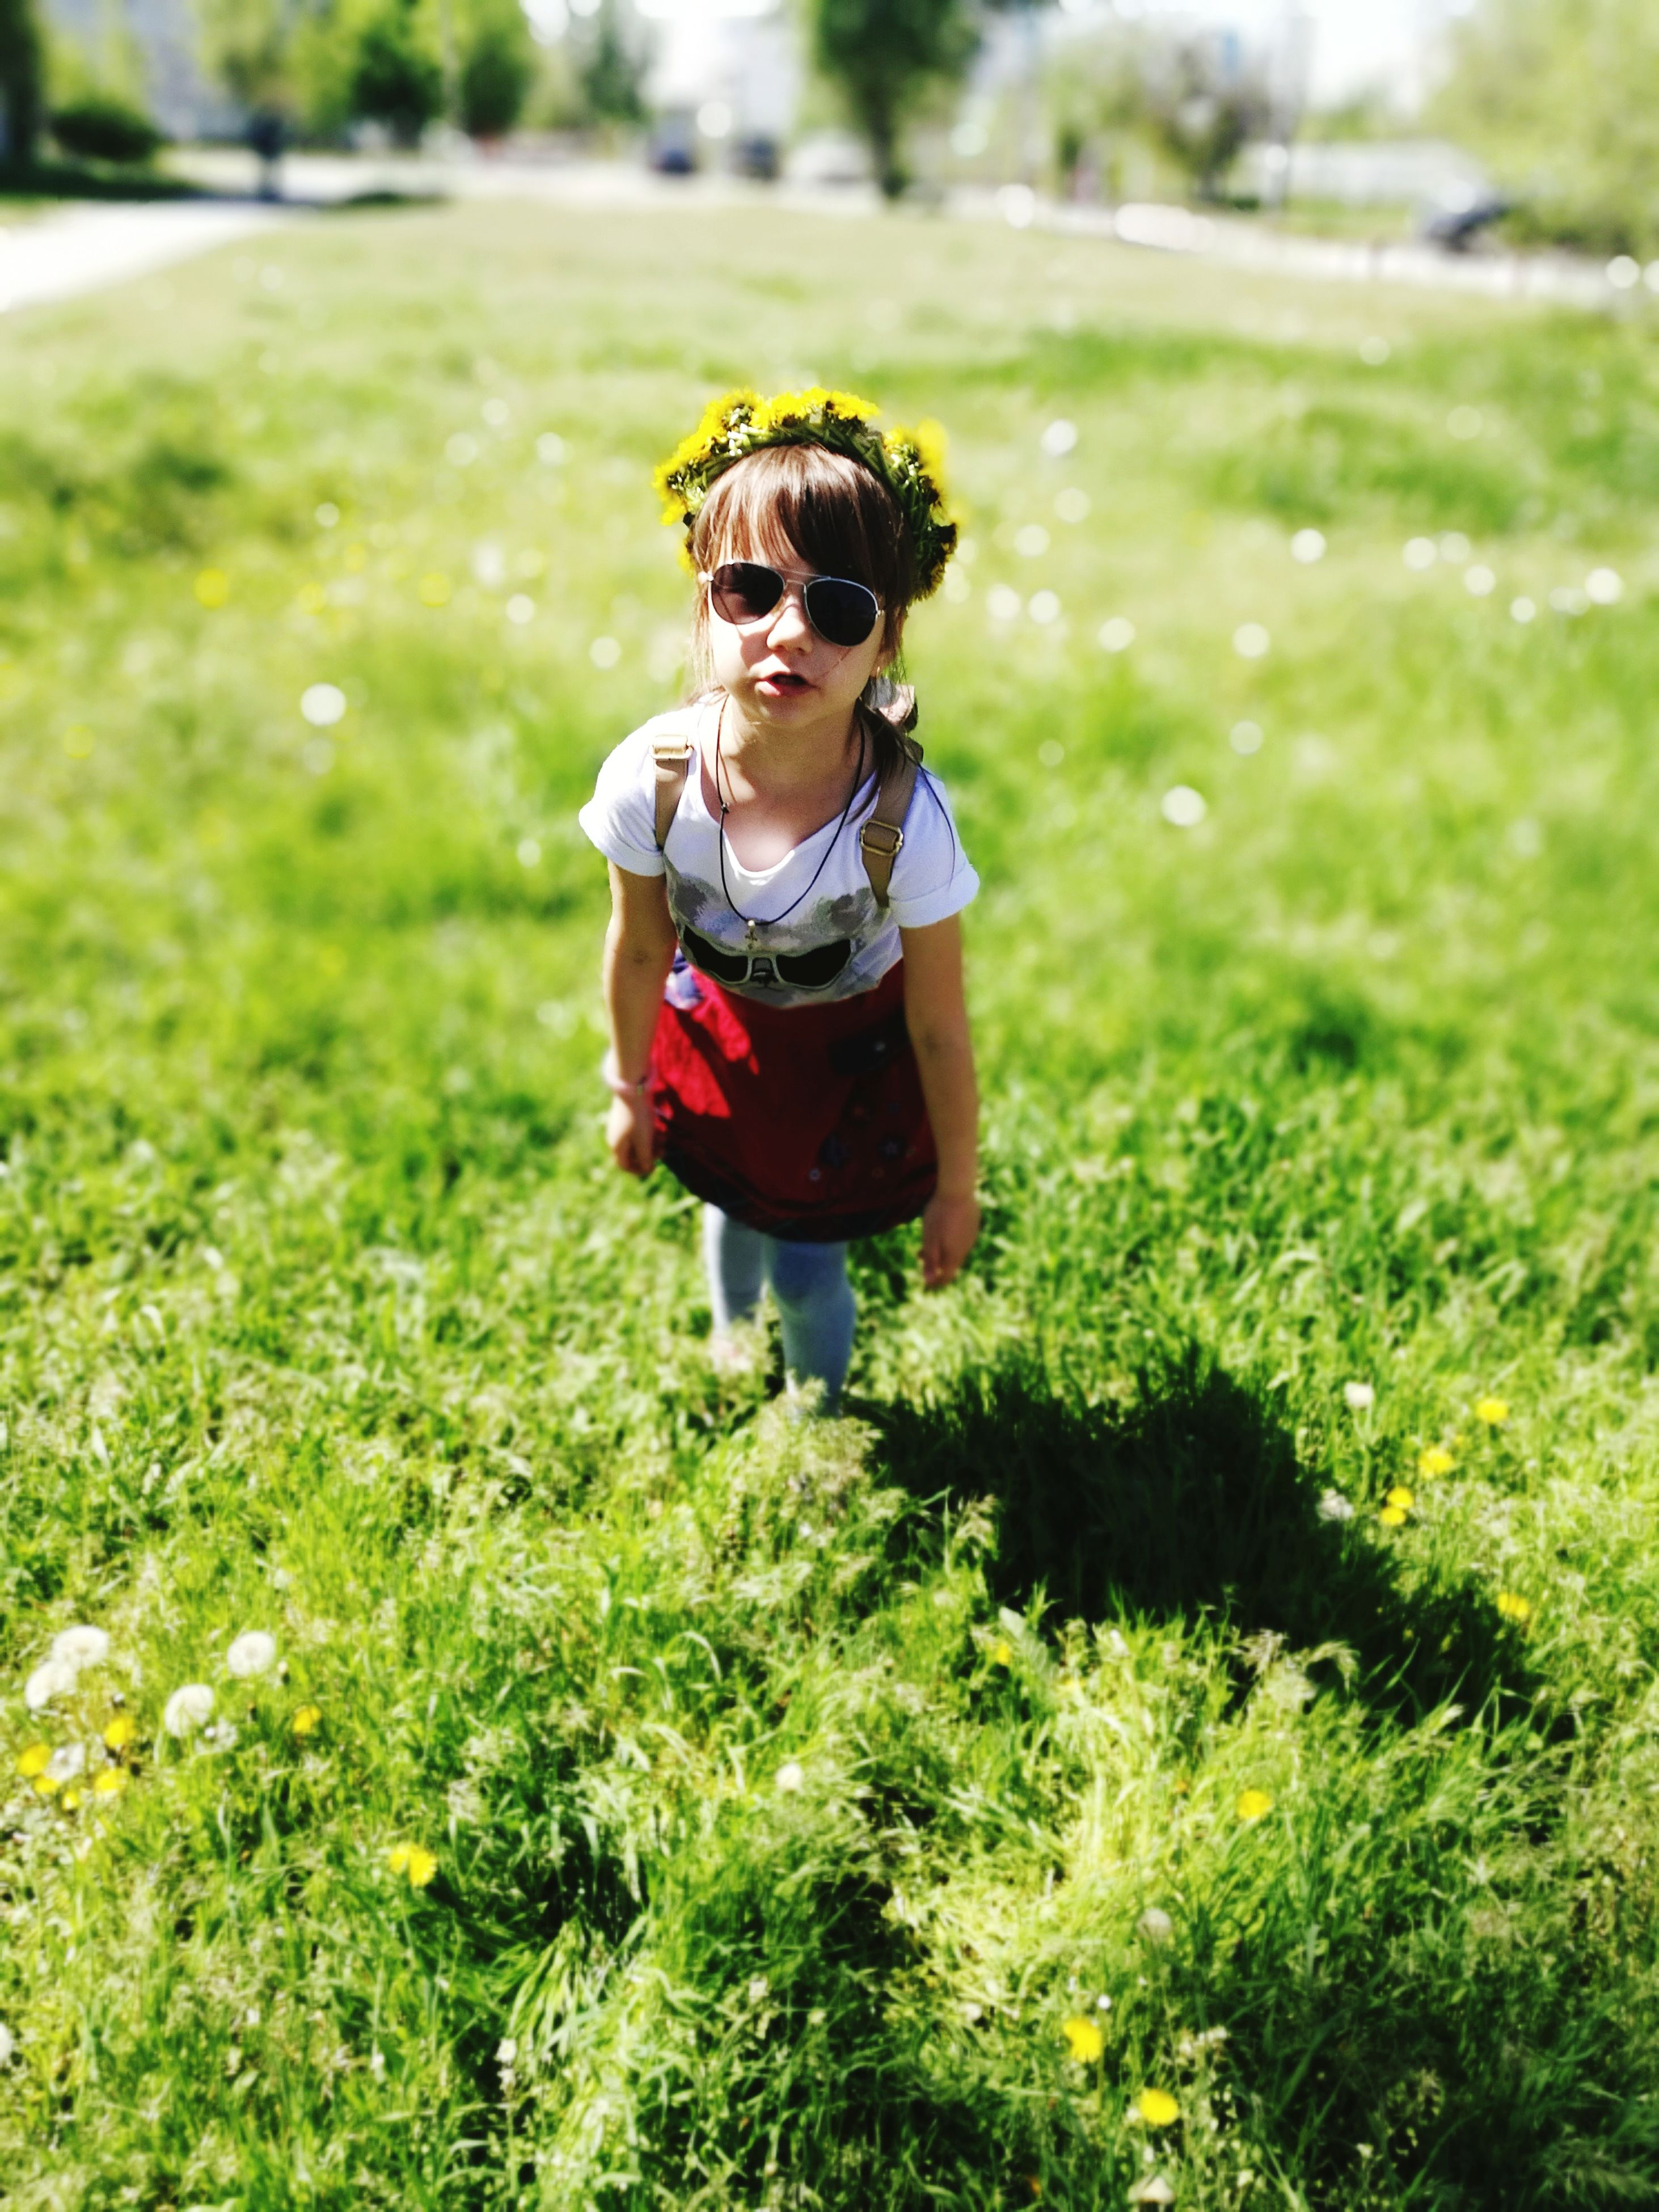 grass, childhood, real people, field, one person, day, elementary age, walking, outdoors, full length, green color, lifestyles, boys, growth, nature, standing, flower, people